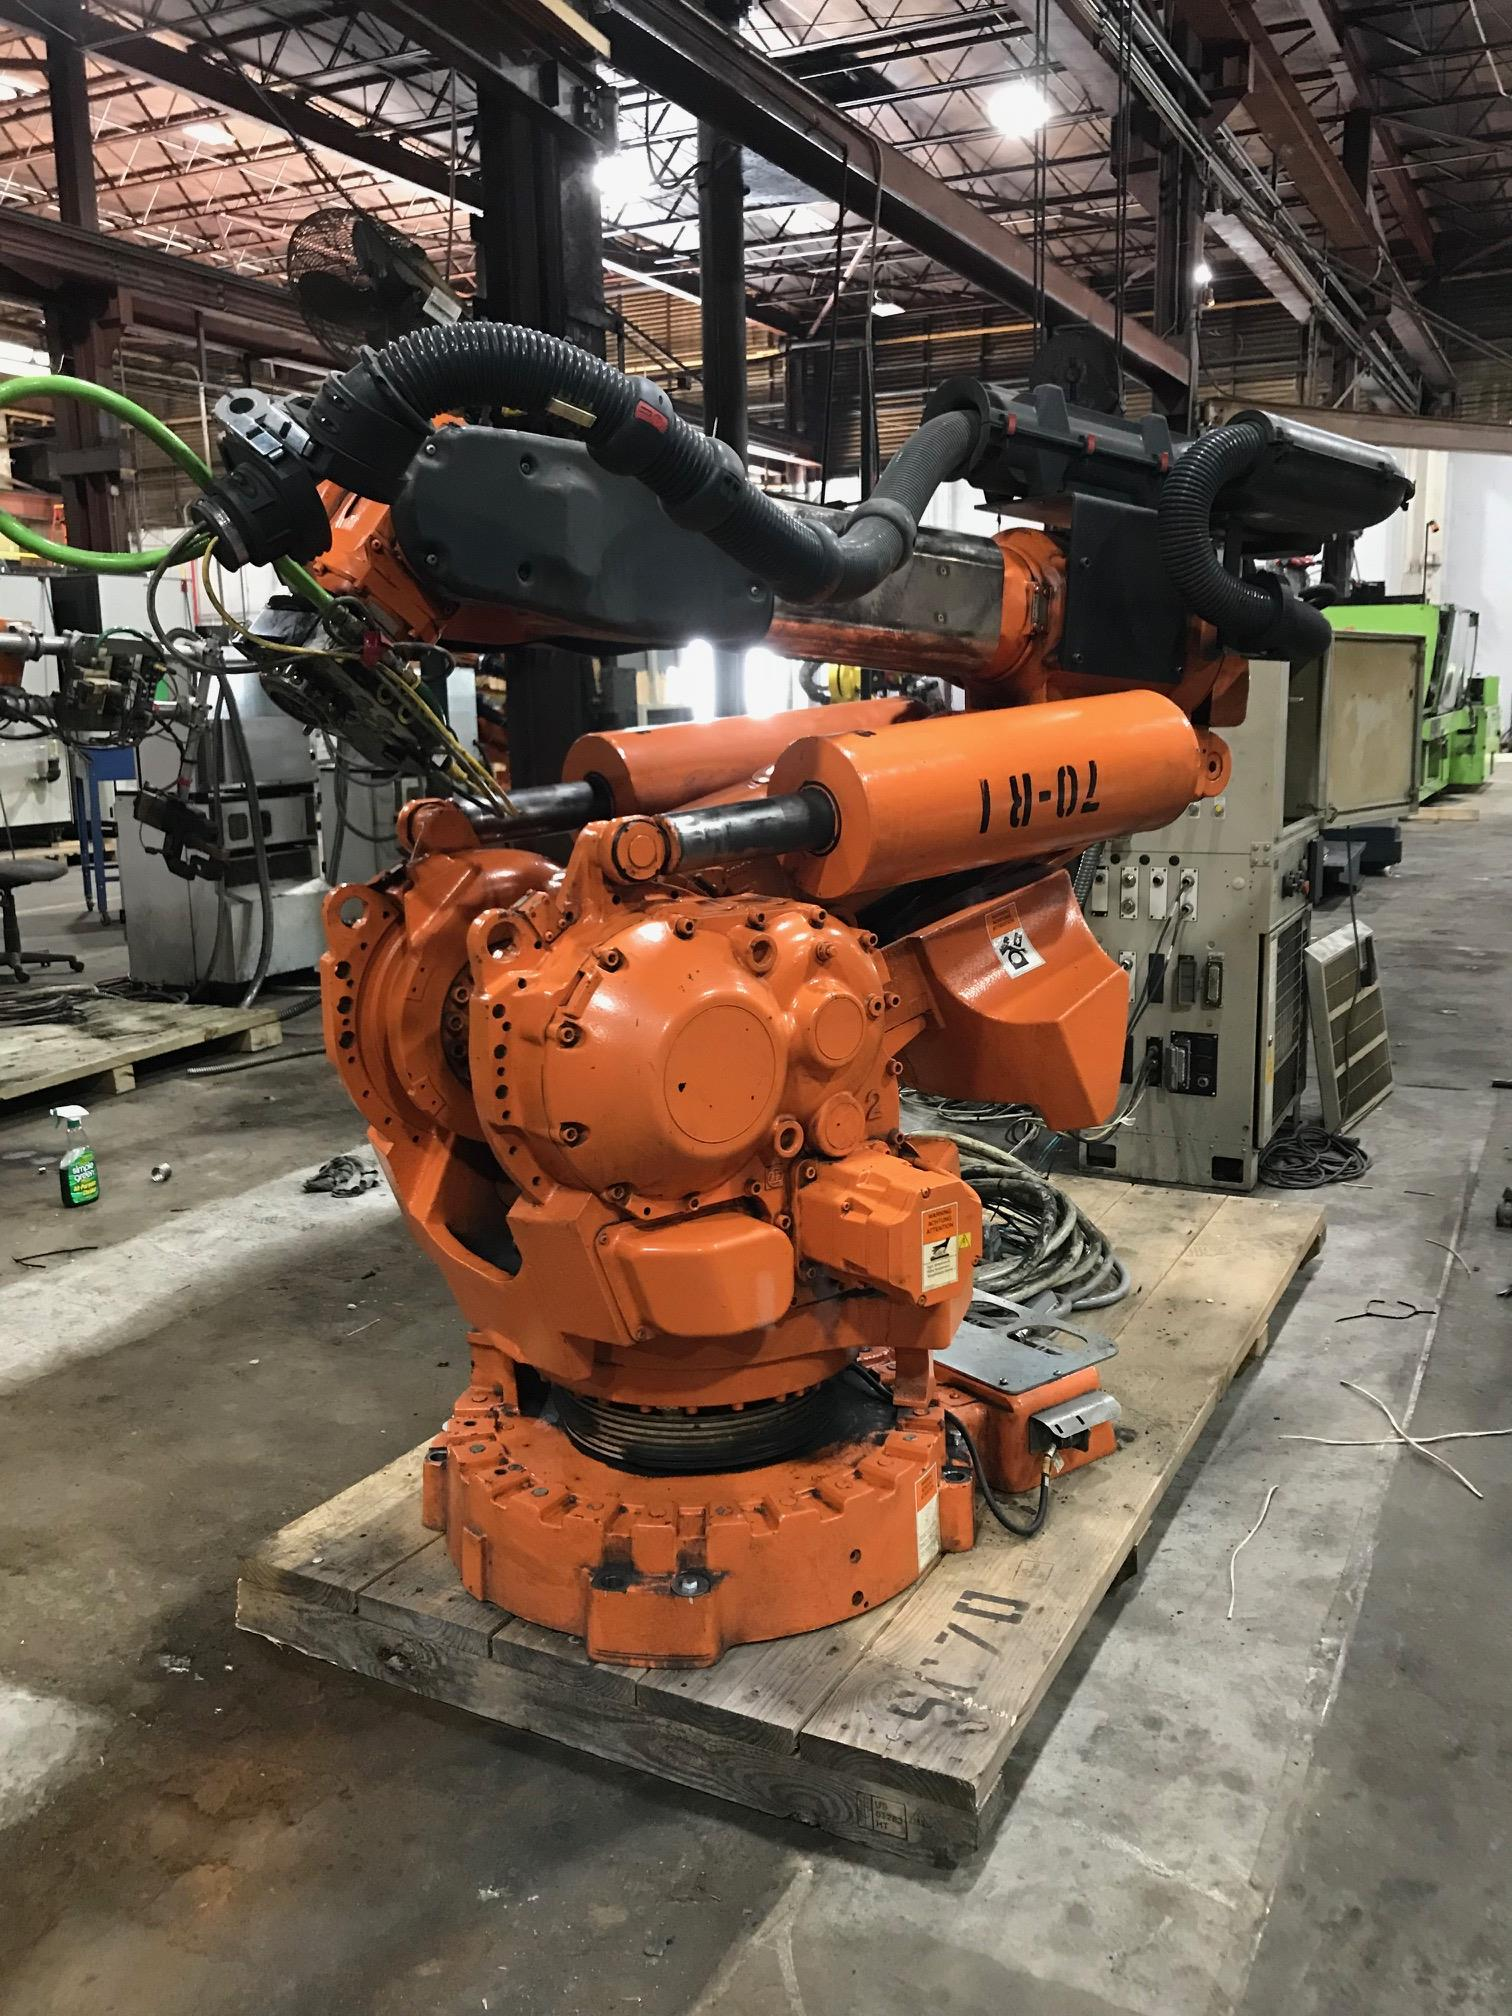 Lot 9 - Lot of 2 2003 to 2005 - ABB - IRB6400R M2000 2.5-150 - S4C+ Controller Reserve is at $6000